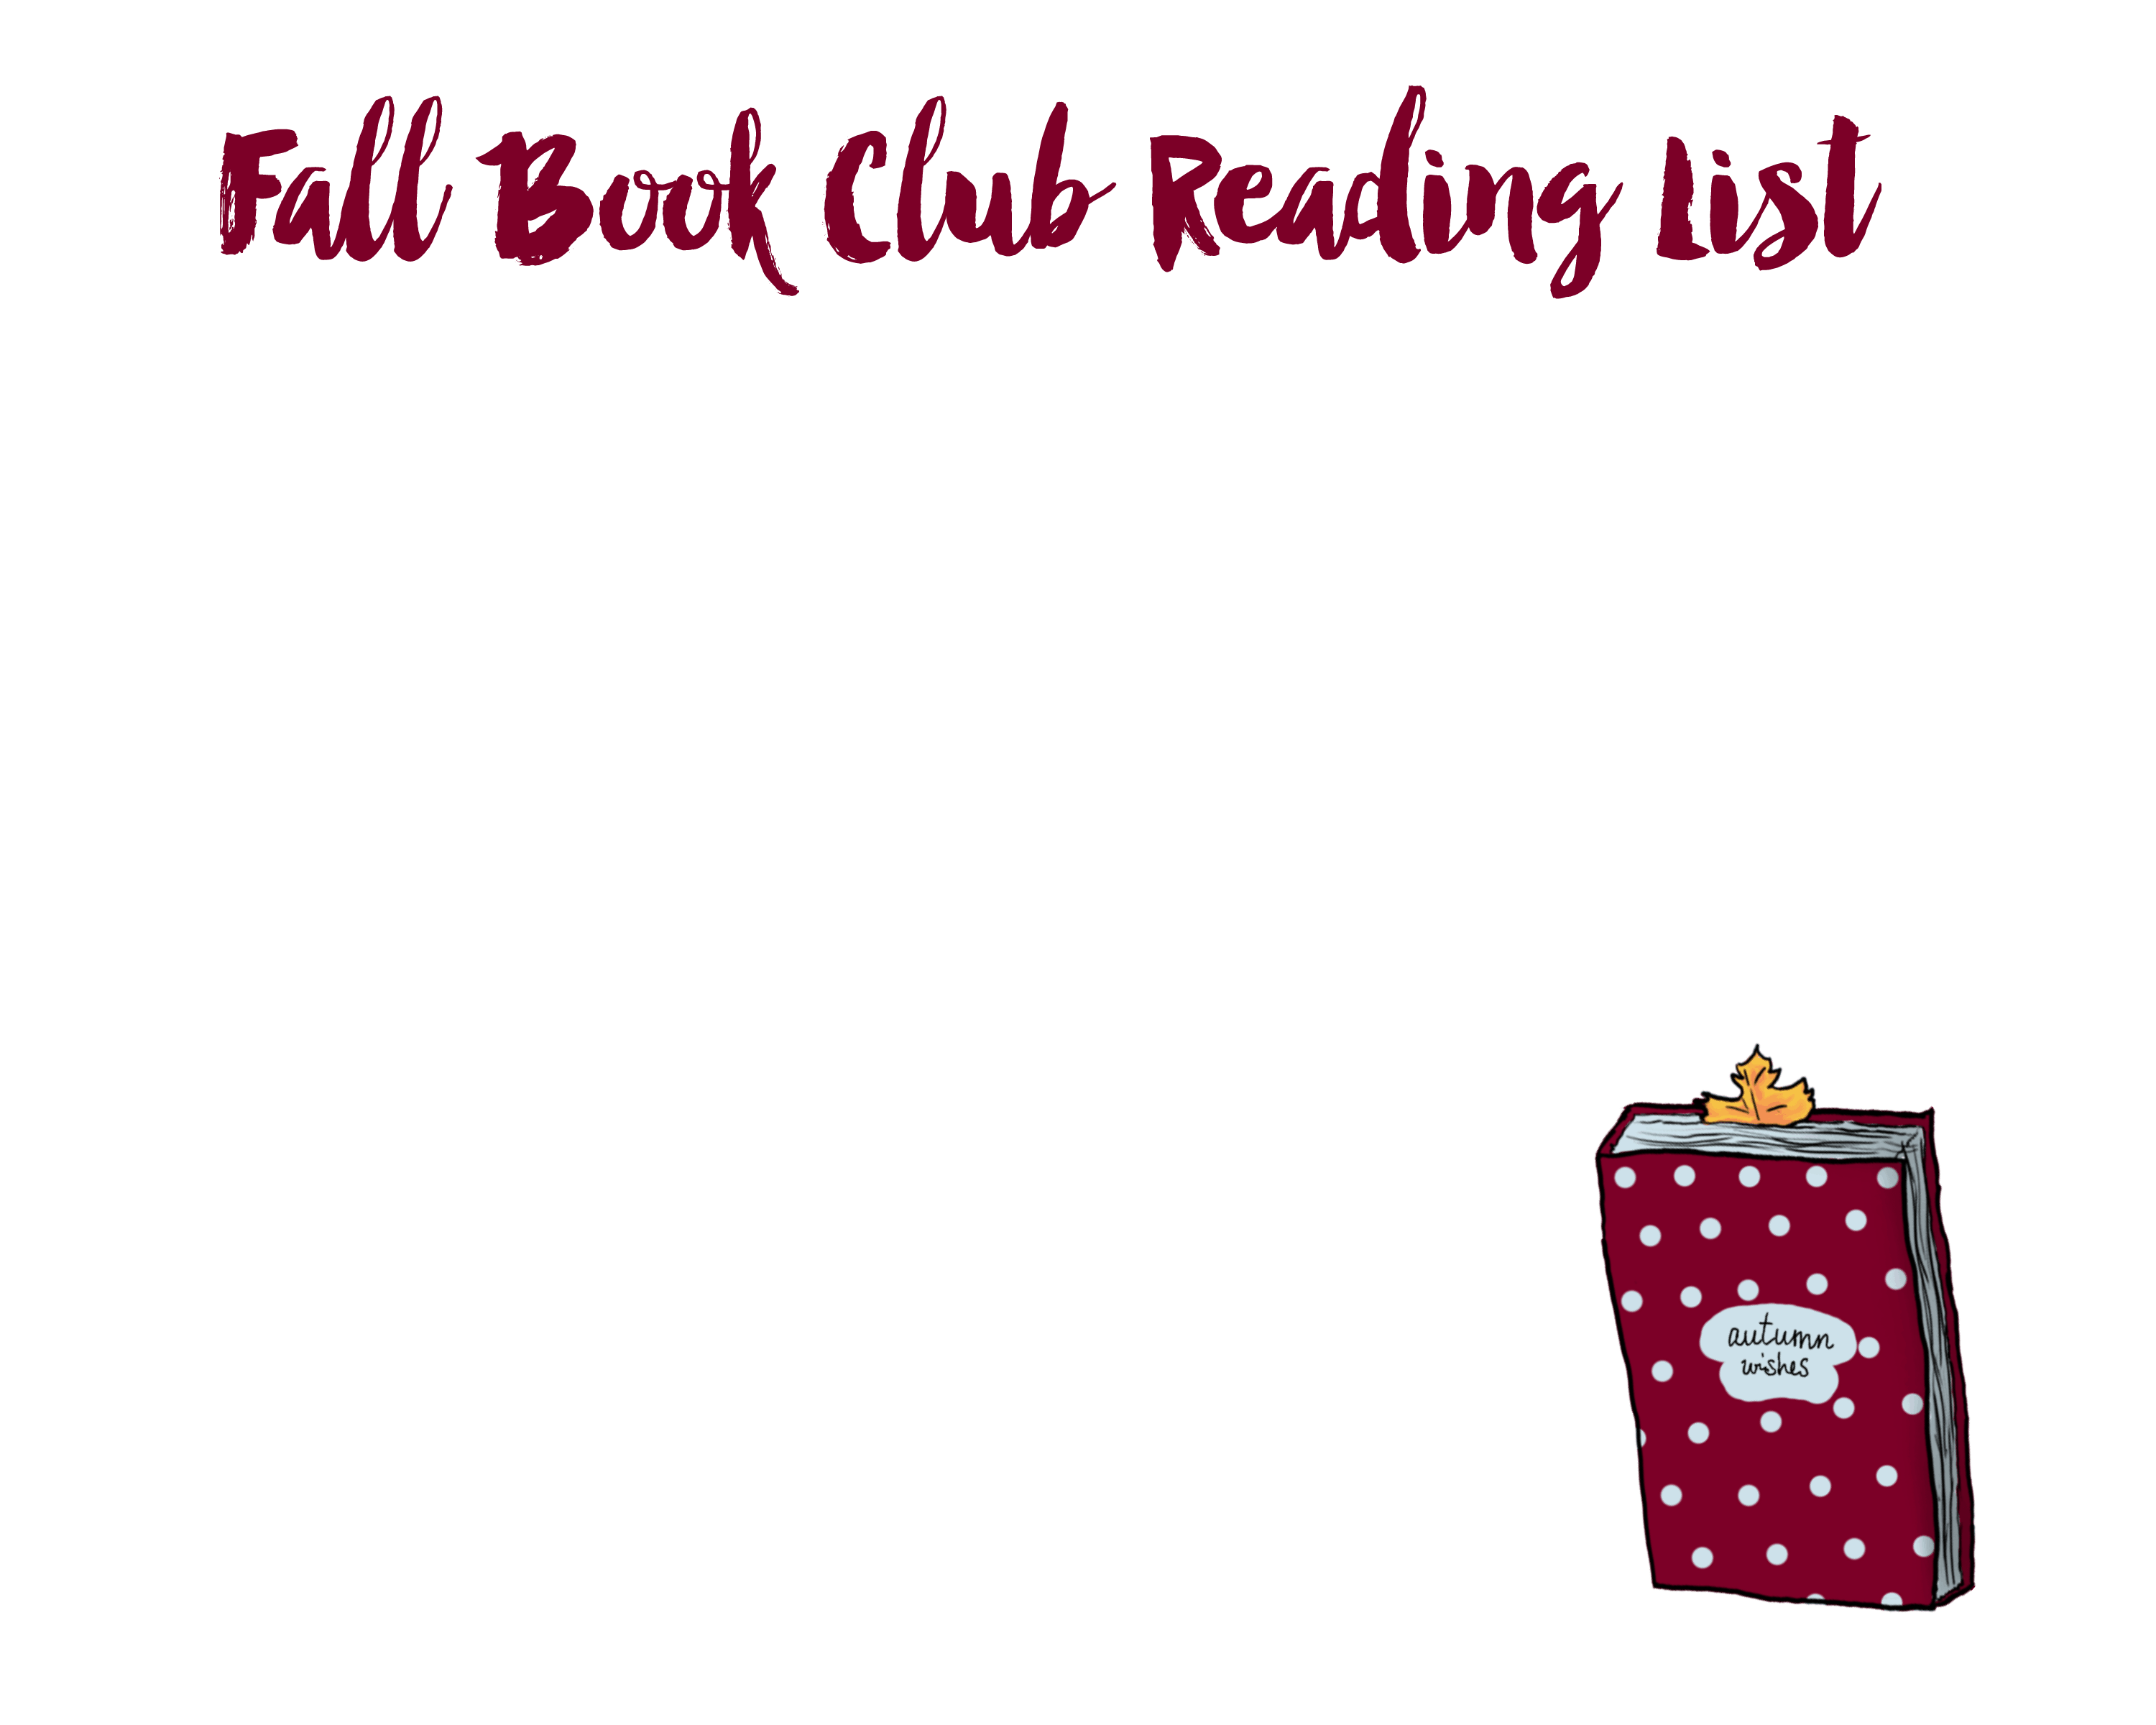 Fall Book Club Reading List